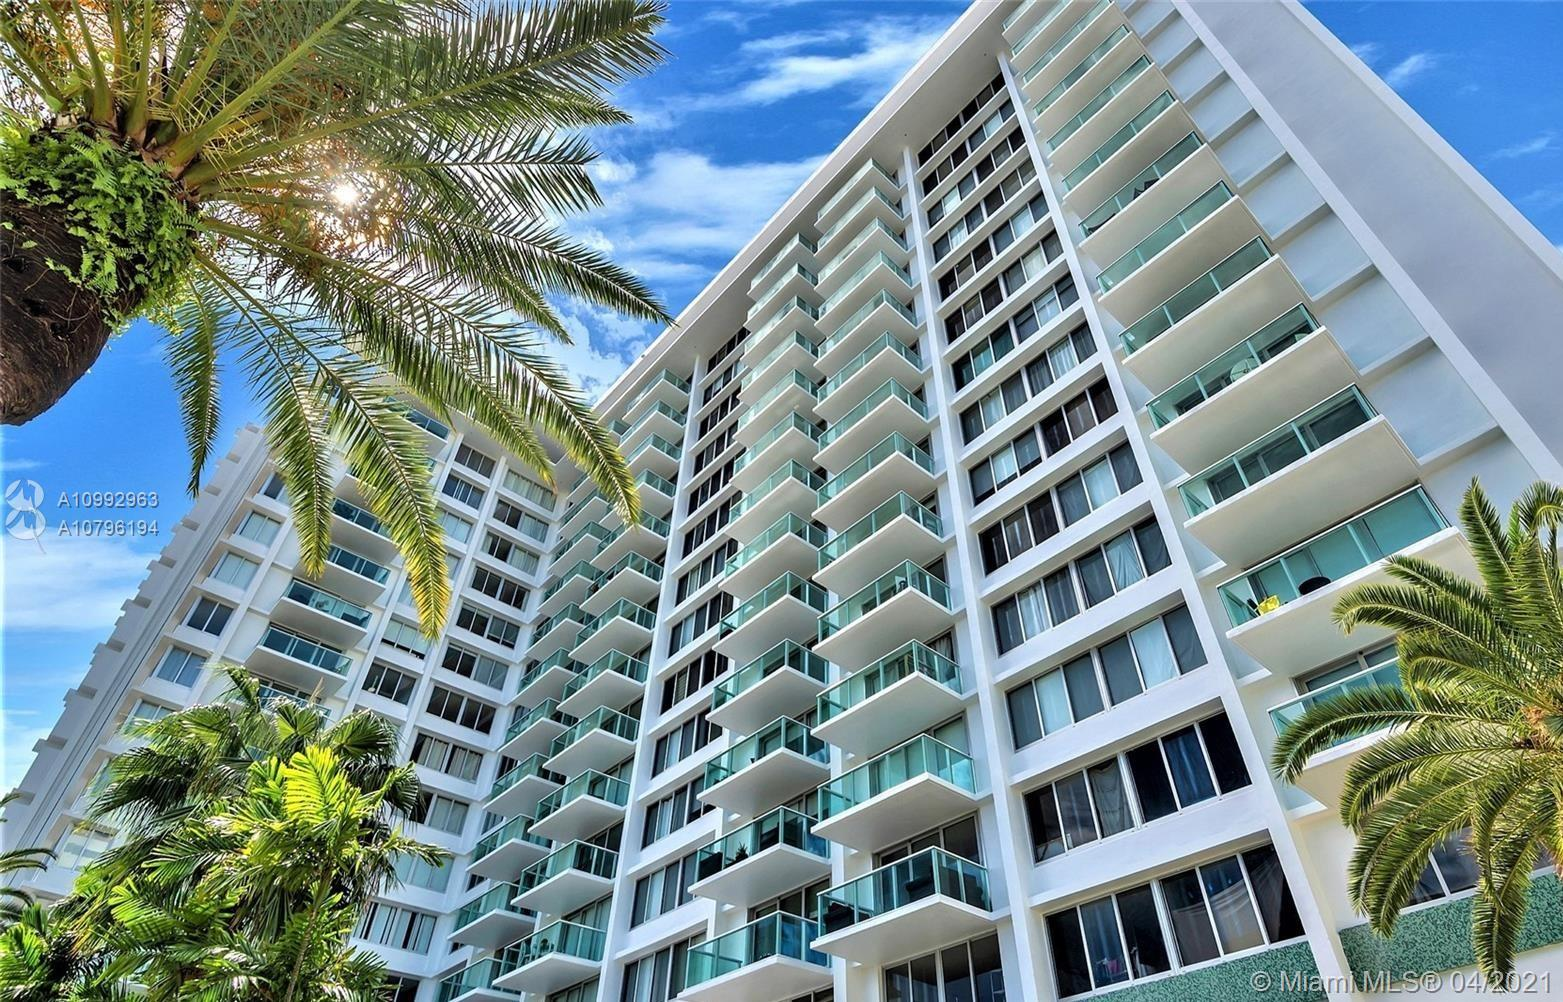 Mirador South #208 - 1000 WEST AV #208, Miami Beach, FL 33139